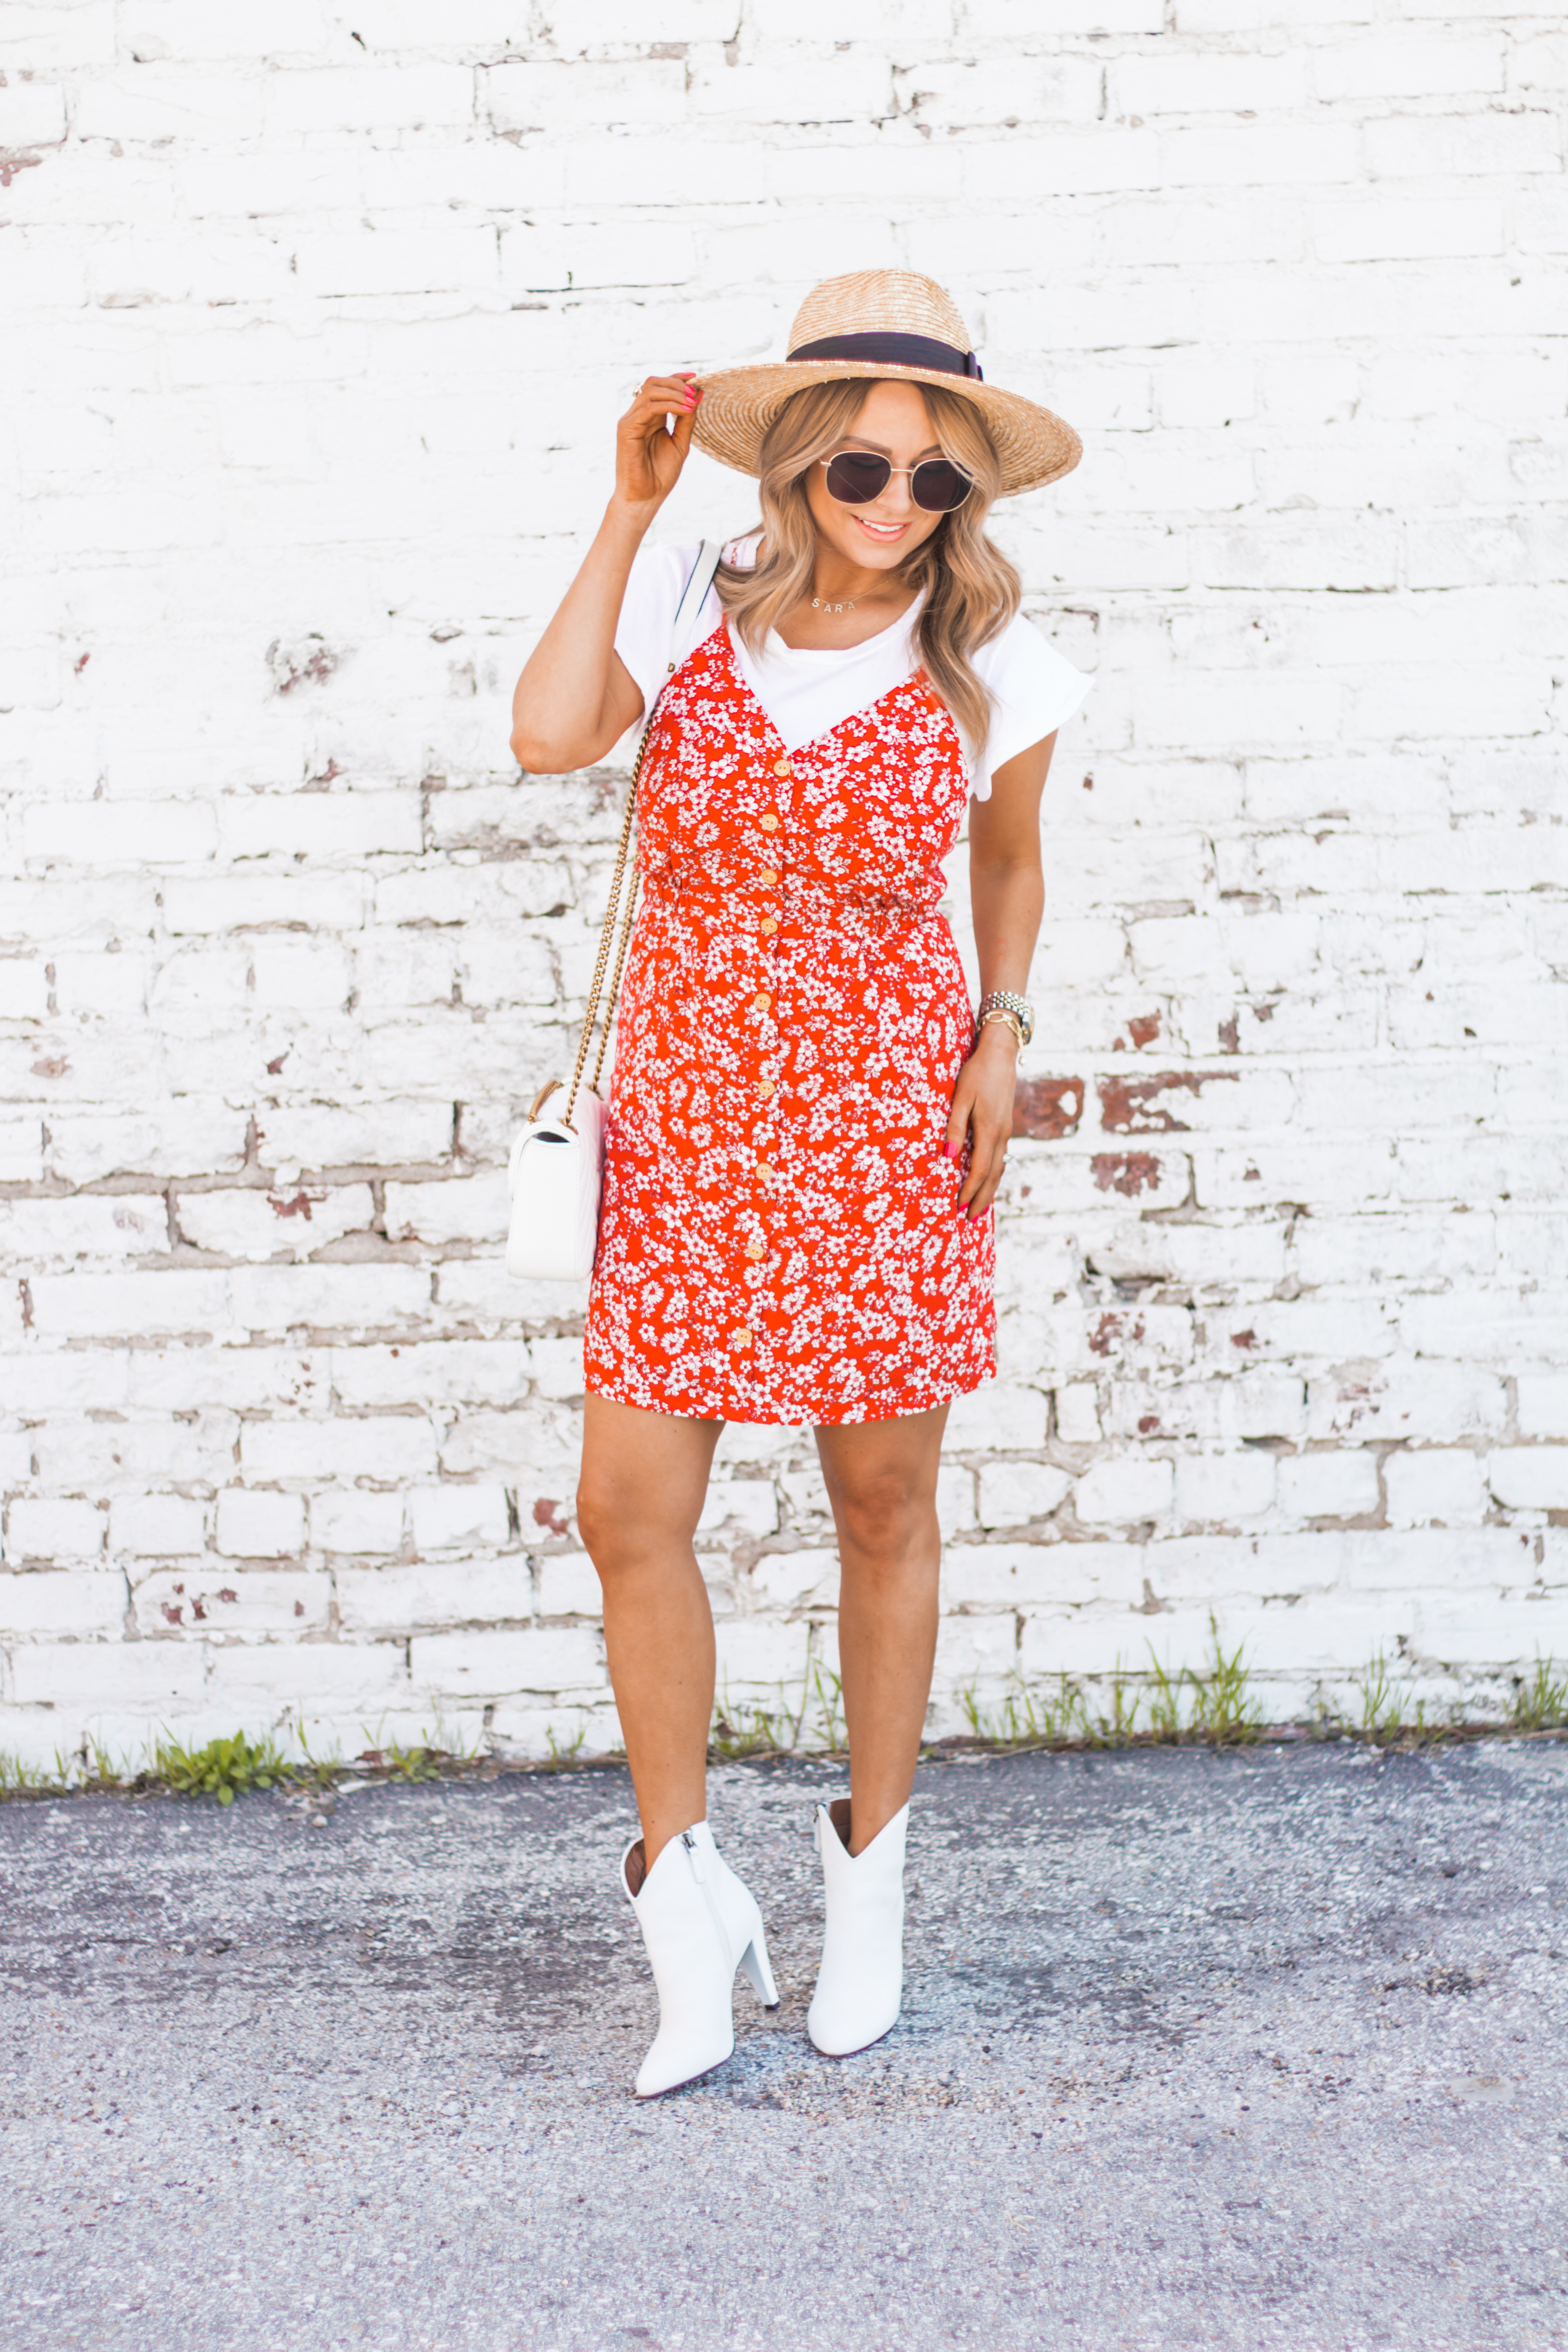 red-sundress-spring-summer-dress-floral dress-women's fashion- spring fashion-summer fashion-brixton hat-white booties-Omaha blogger-sabby style-2